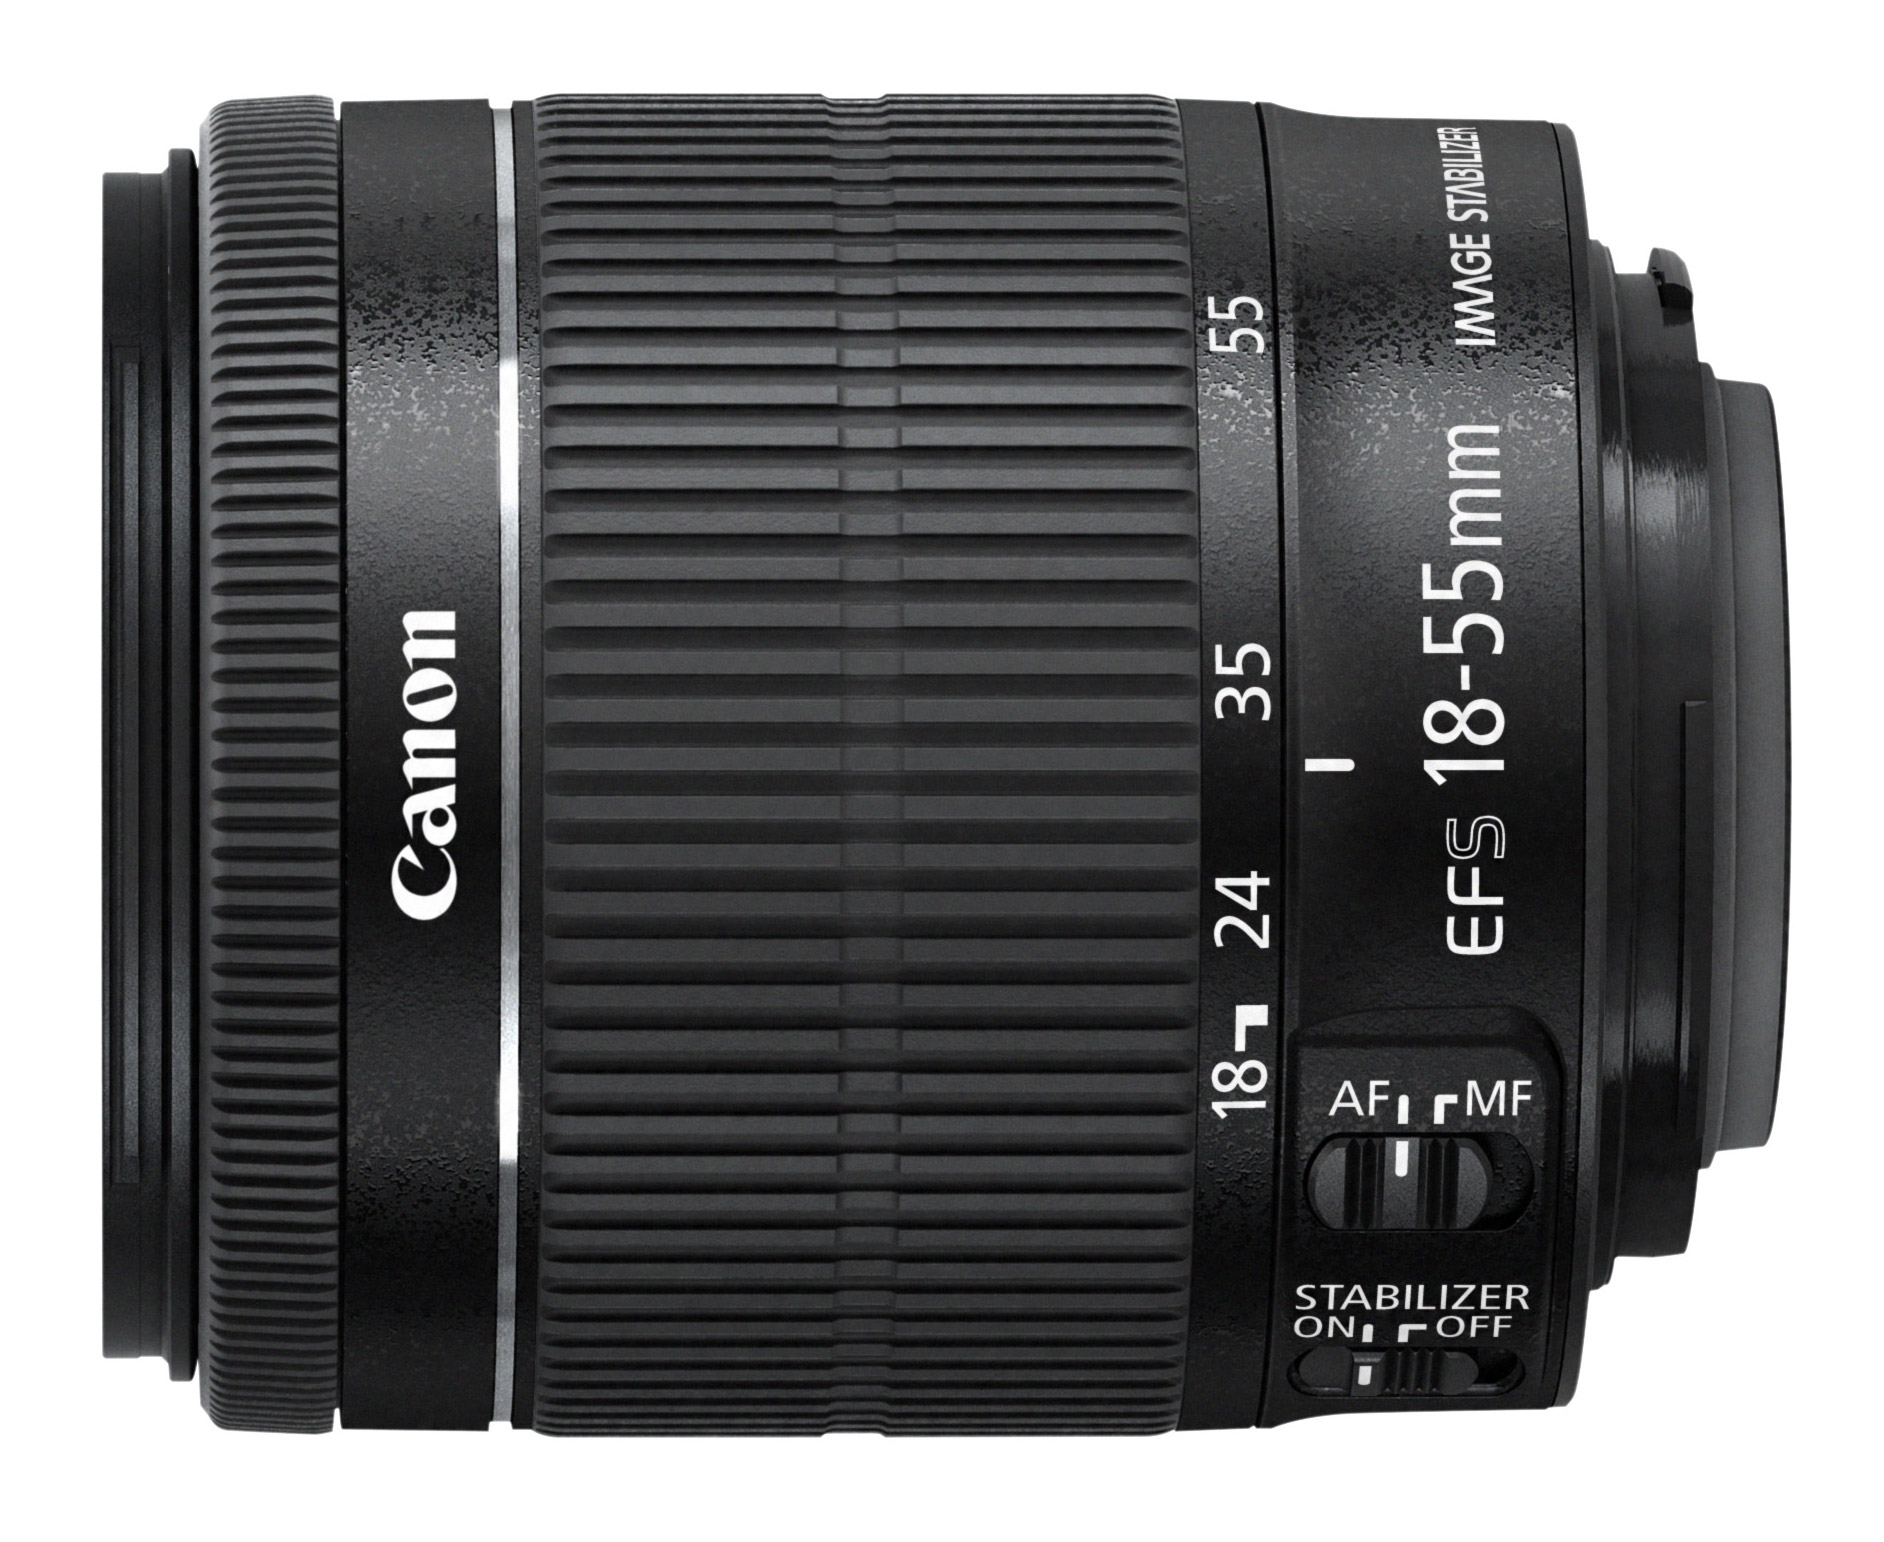 Canon EF-S 18-55mm f/3.5-5.6 IS STM